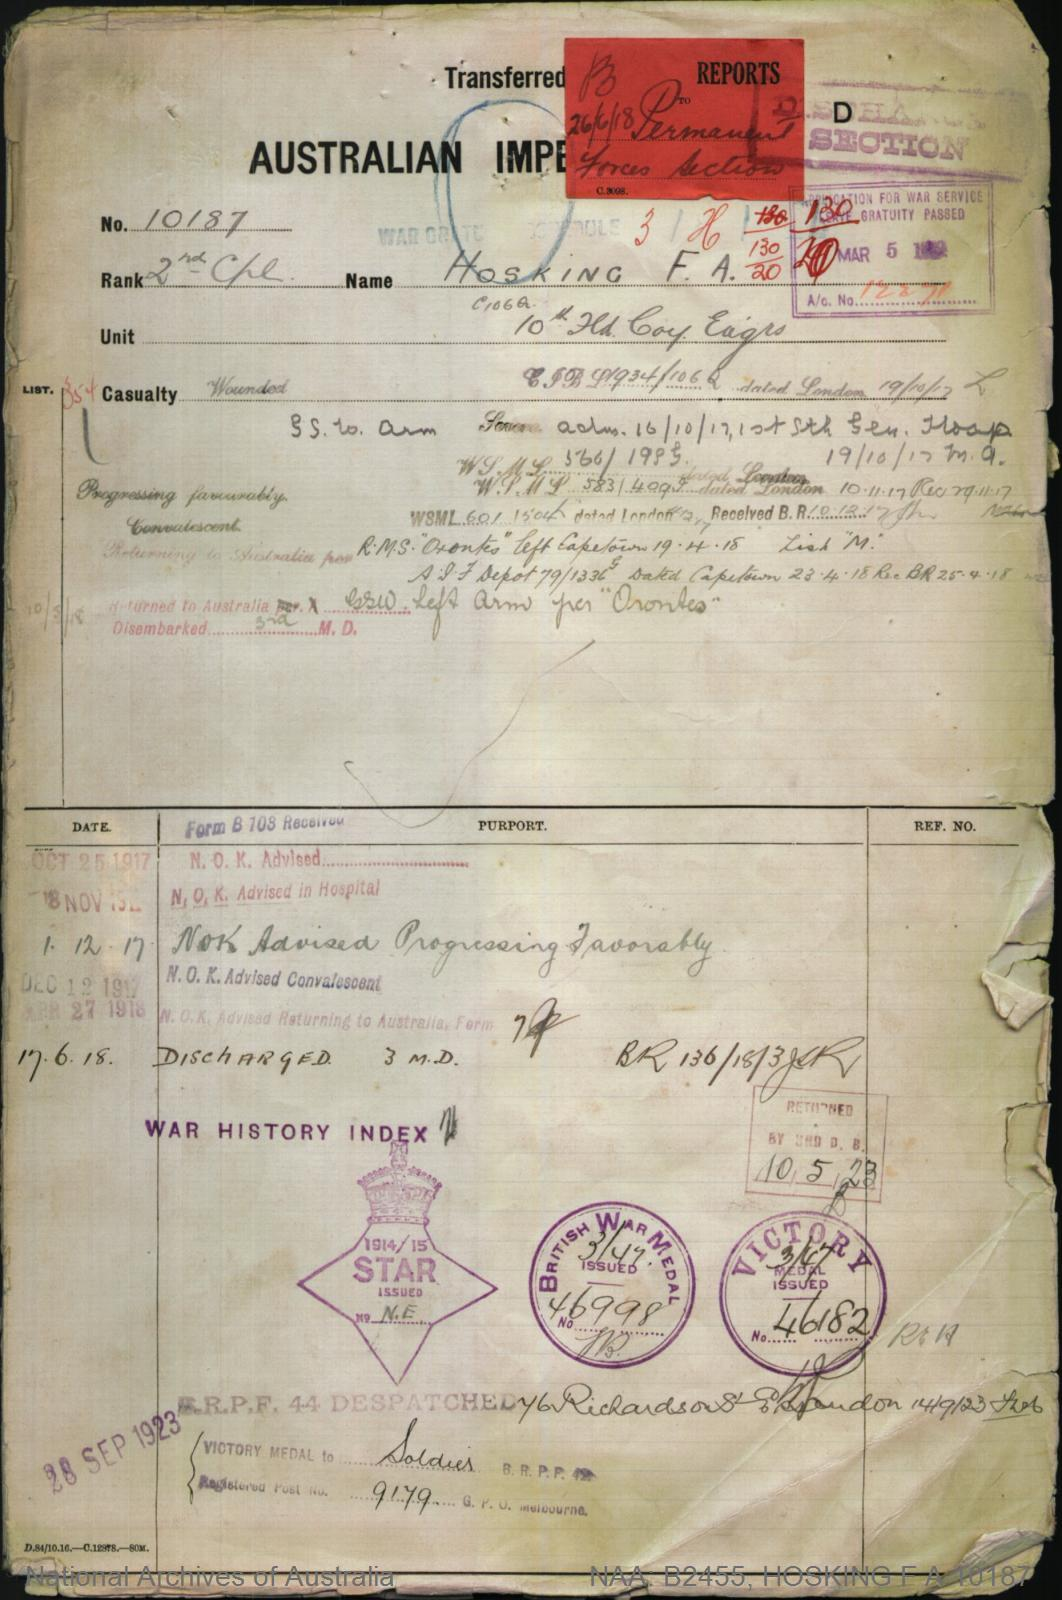 HOSKING Frederick Alexander : Service Number - 10187 : Place of Birth - Melbourne Vic : Place of Enlistment - Melbourne Vic : Next of Kin - (Wife) HOSKING Francis A